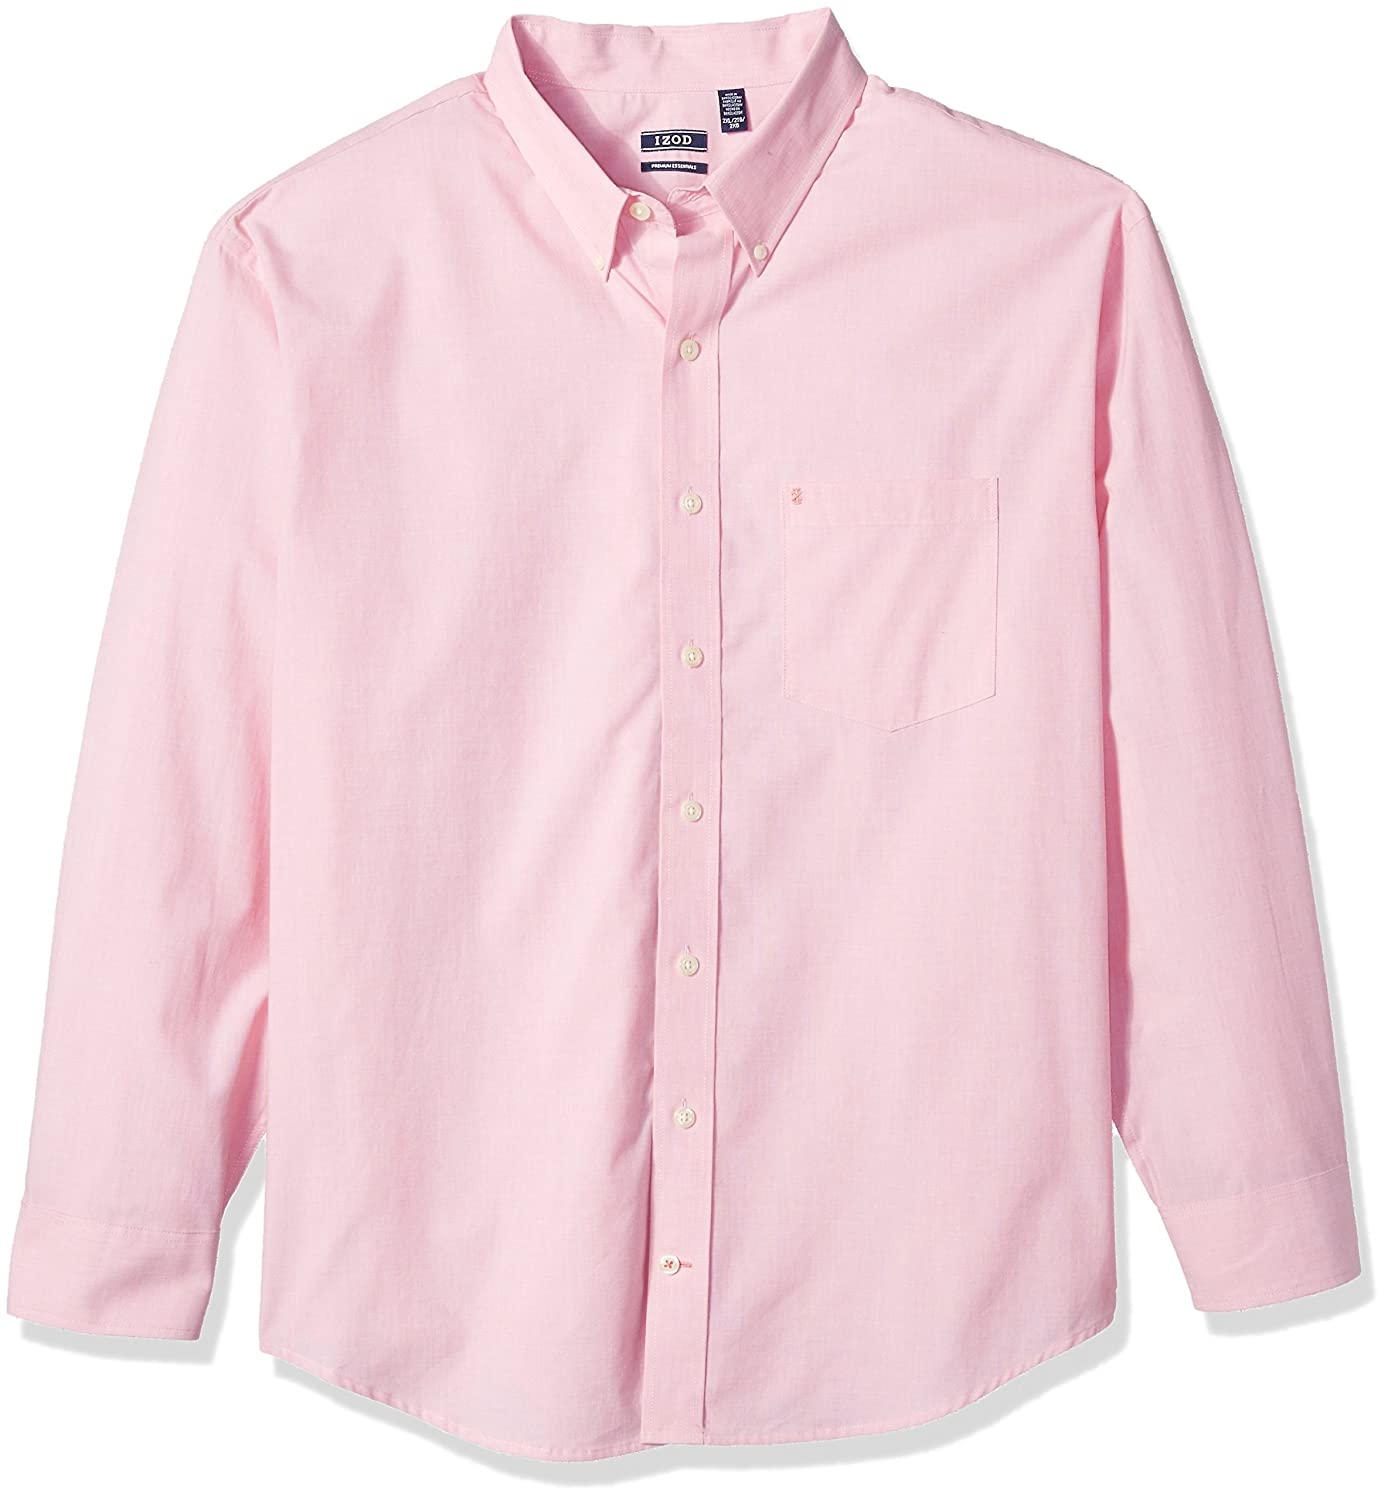 IZOD SHIRT メンズ B076K8QGPK 4X Tall|Light Rapture Rose Light Rapture Rose 4X Tall